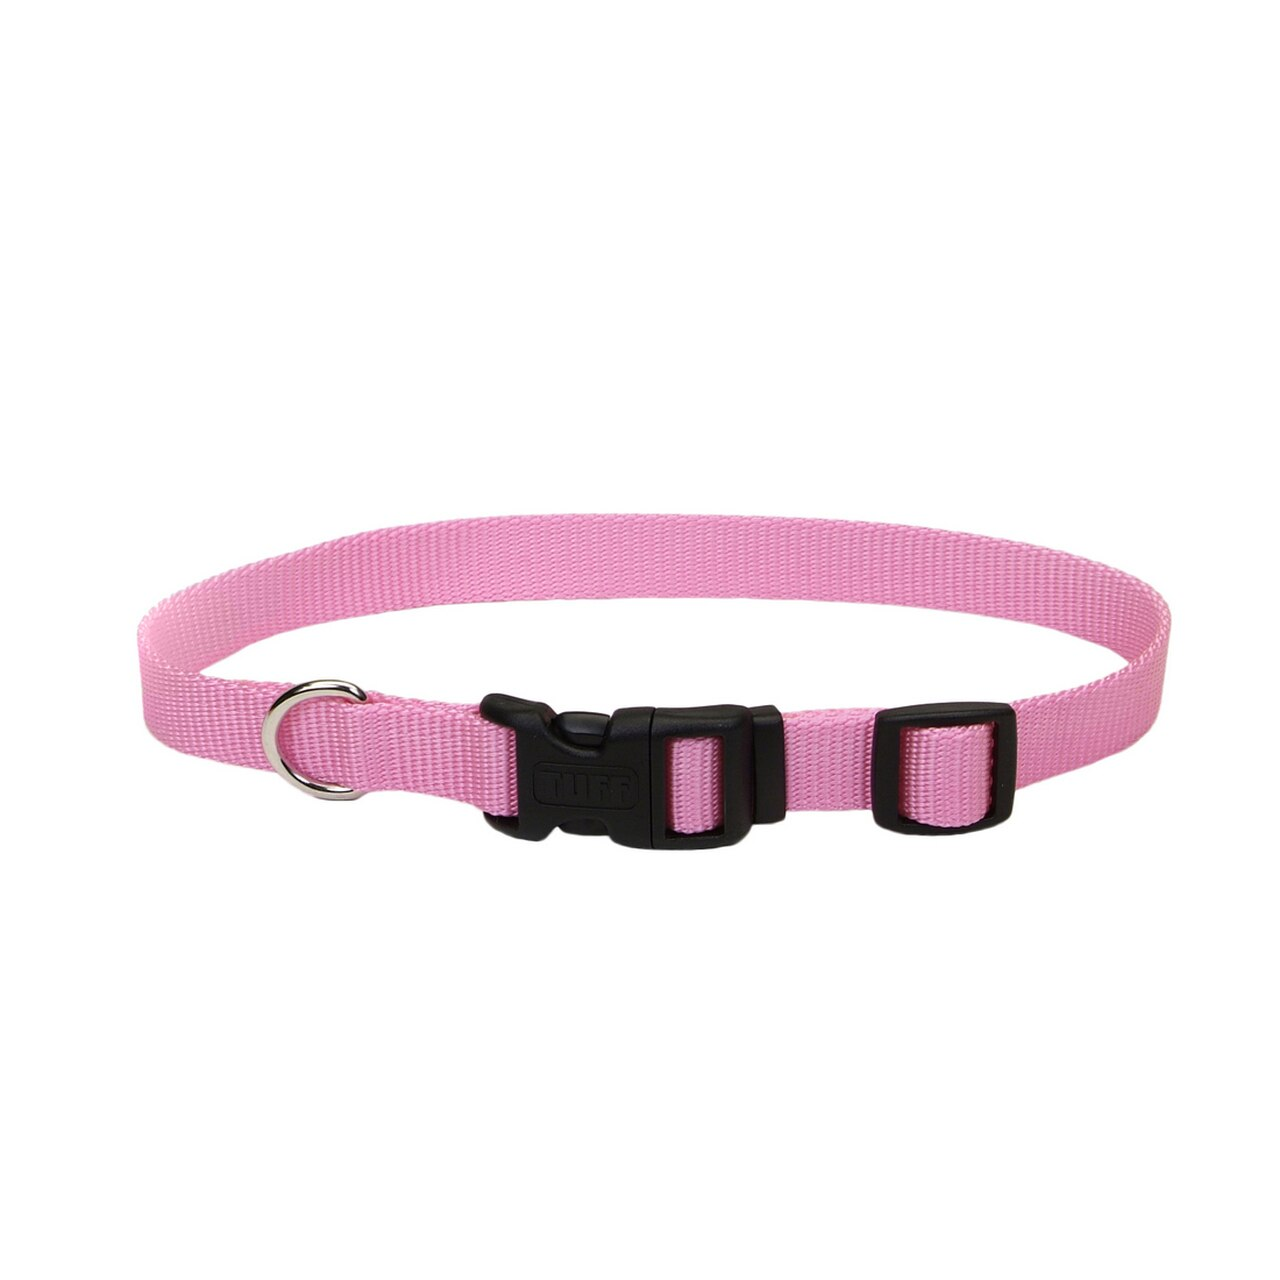 Coastal Adjustable Nylon Collar with Tuff Buckle for Dogs, Pink Bright, 1-in x 18-26-in